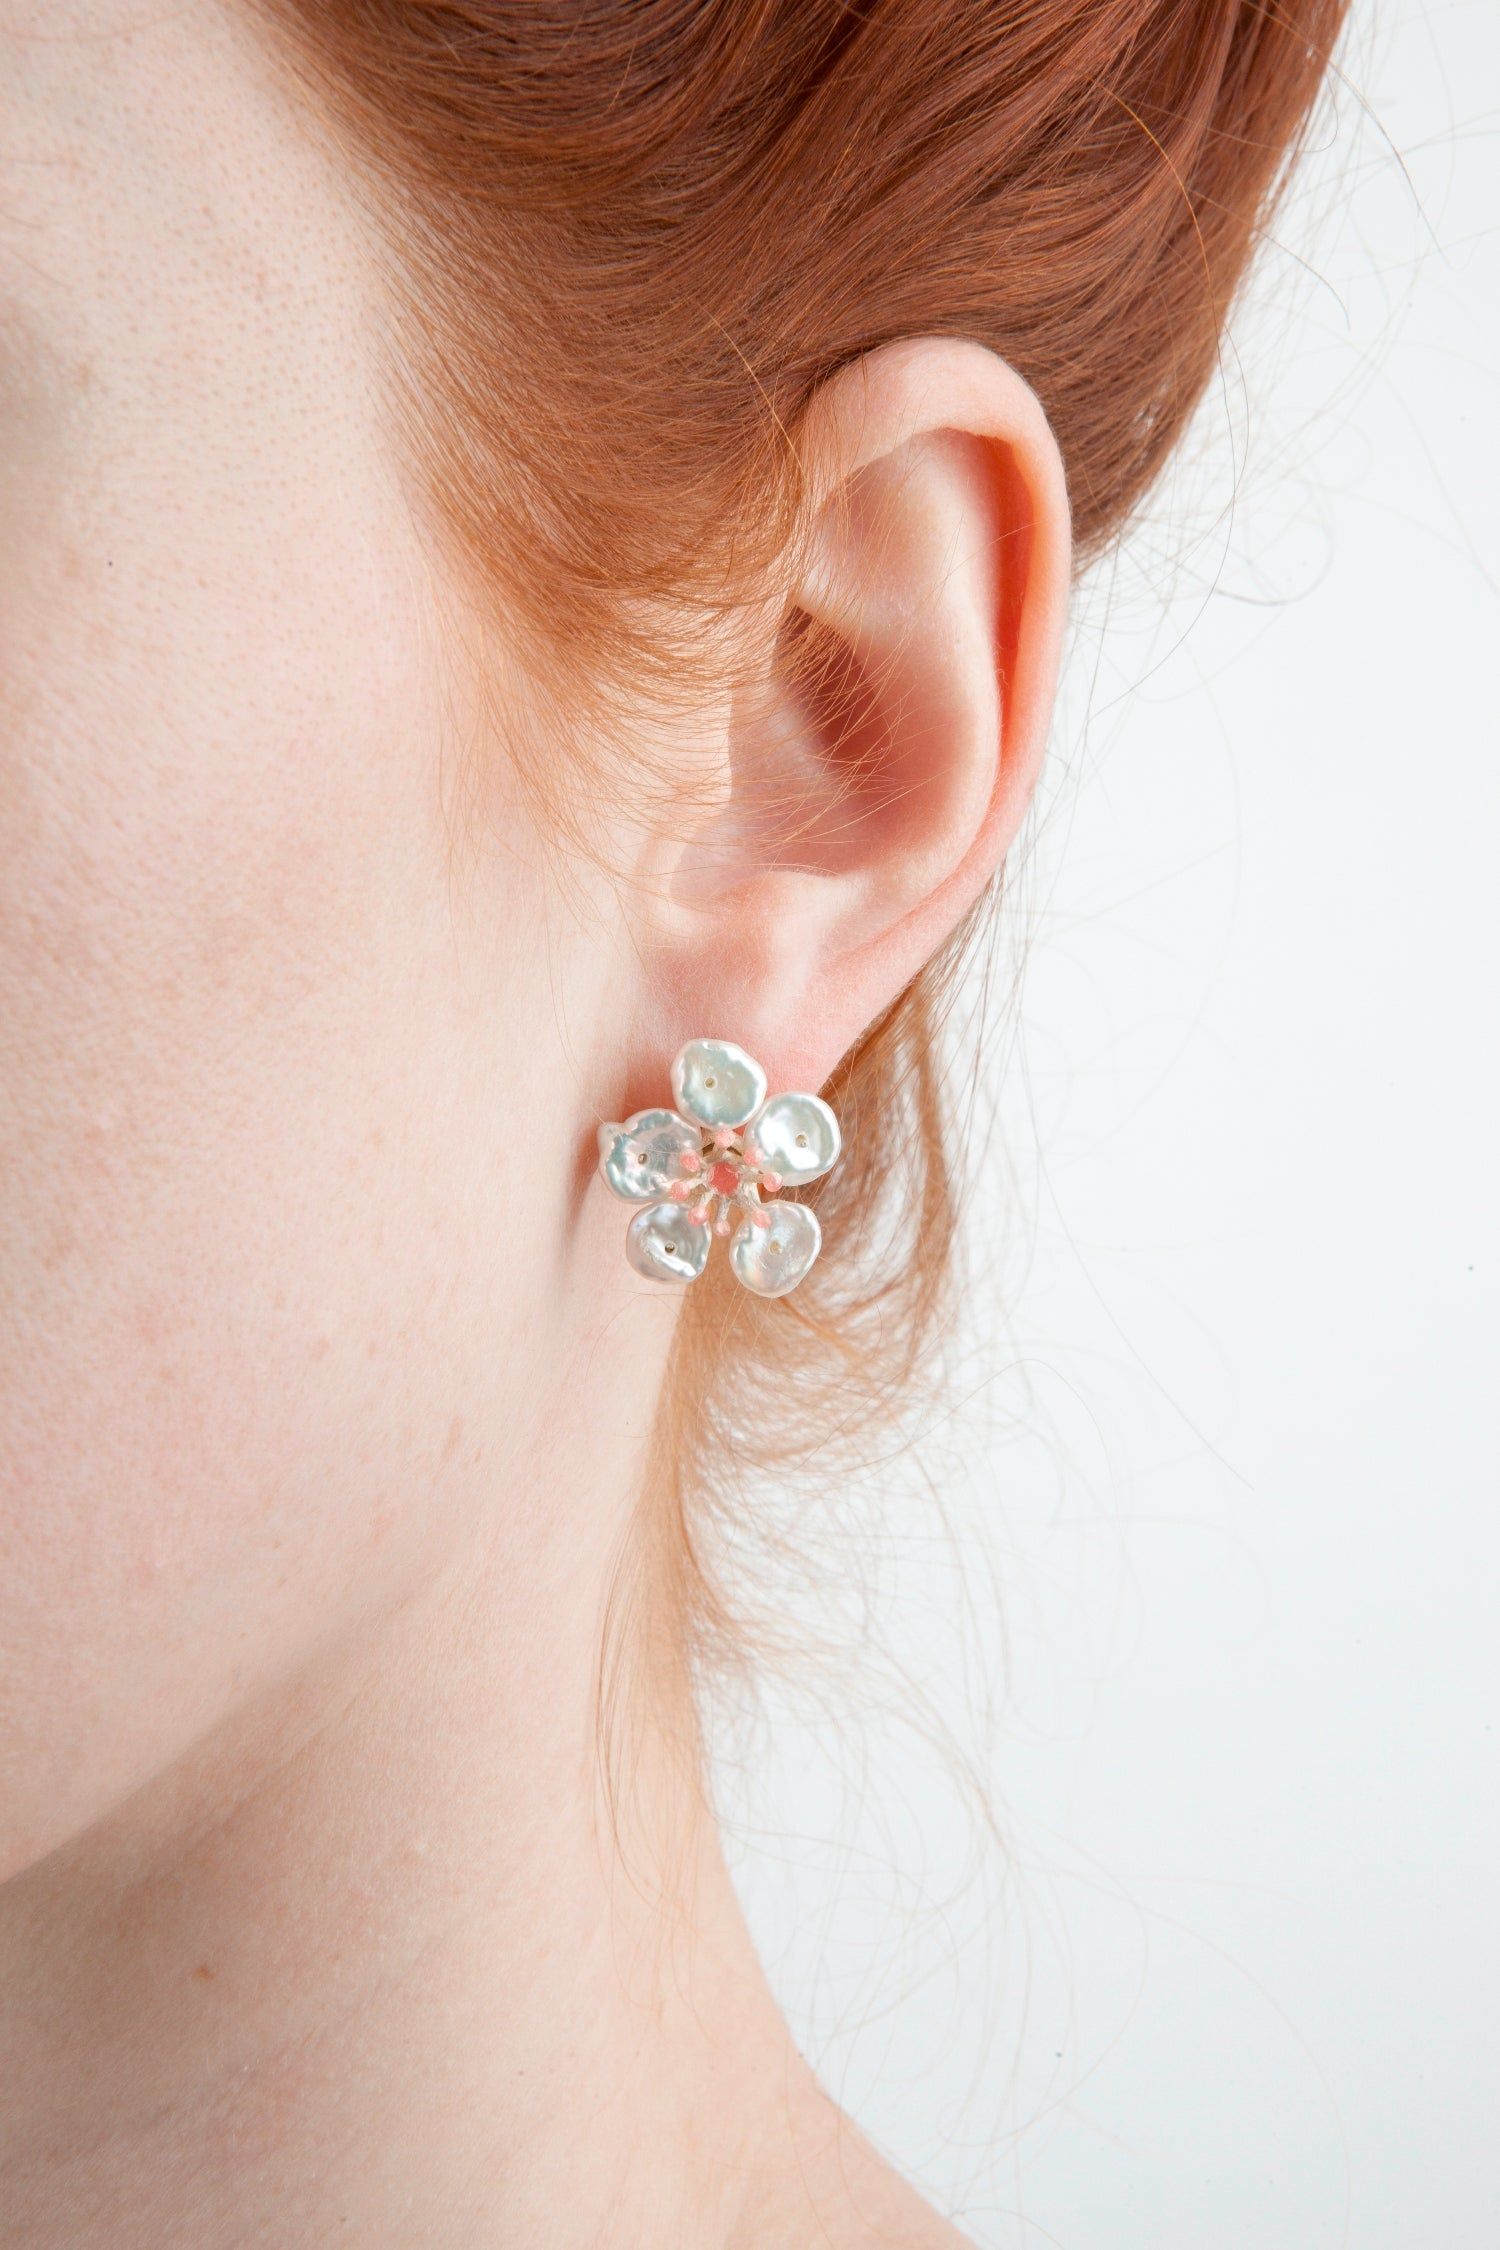 Cherry Blossom Earrings - Flower Post